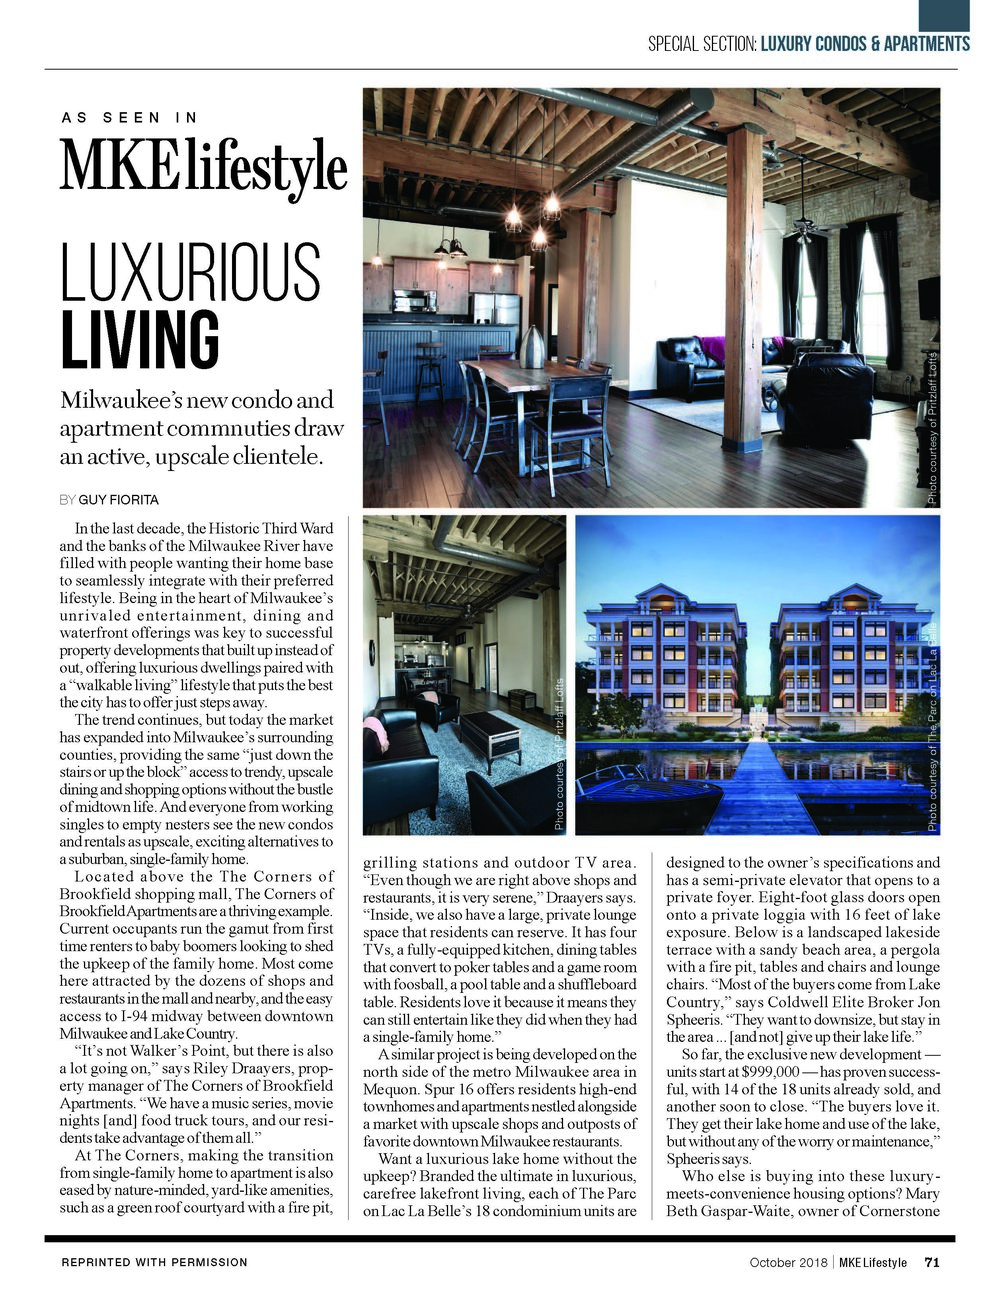 MKE Lifestyle_Oct 2018_Luxury Condos[1] 1.jpg